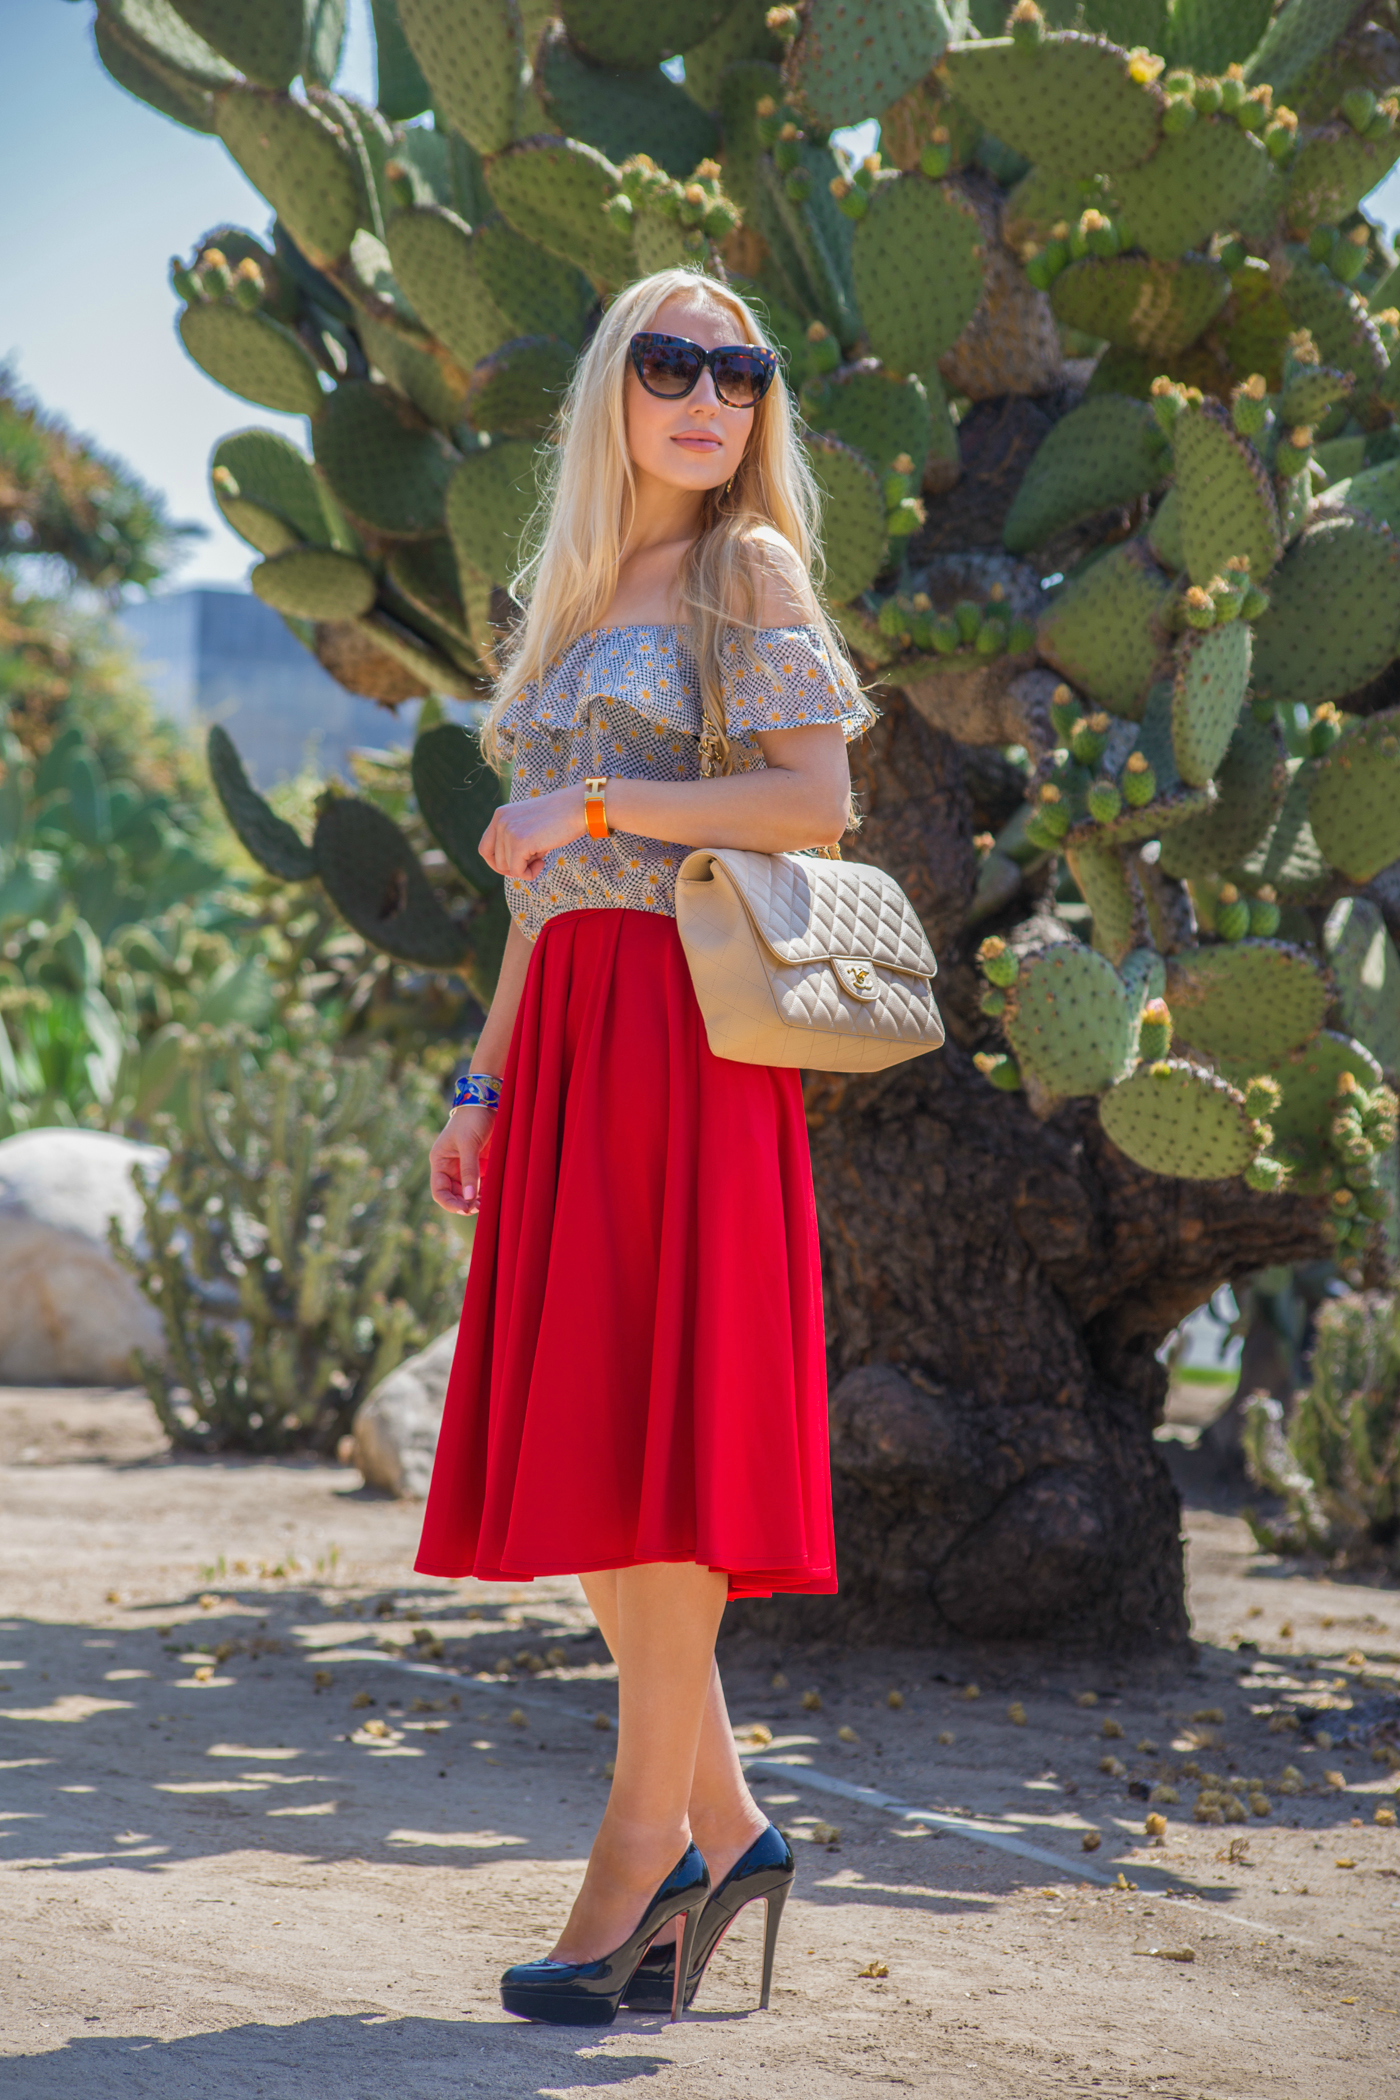 chanel jumbo caviar,christian louboutin shoes,asos red skirt,off the shoulders top,cacti garden